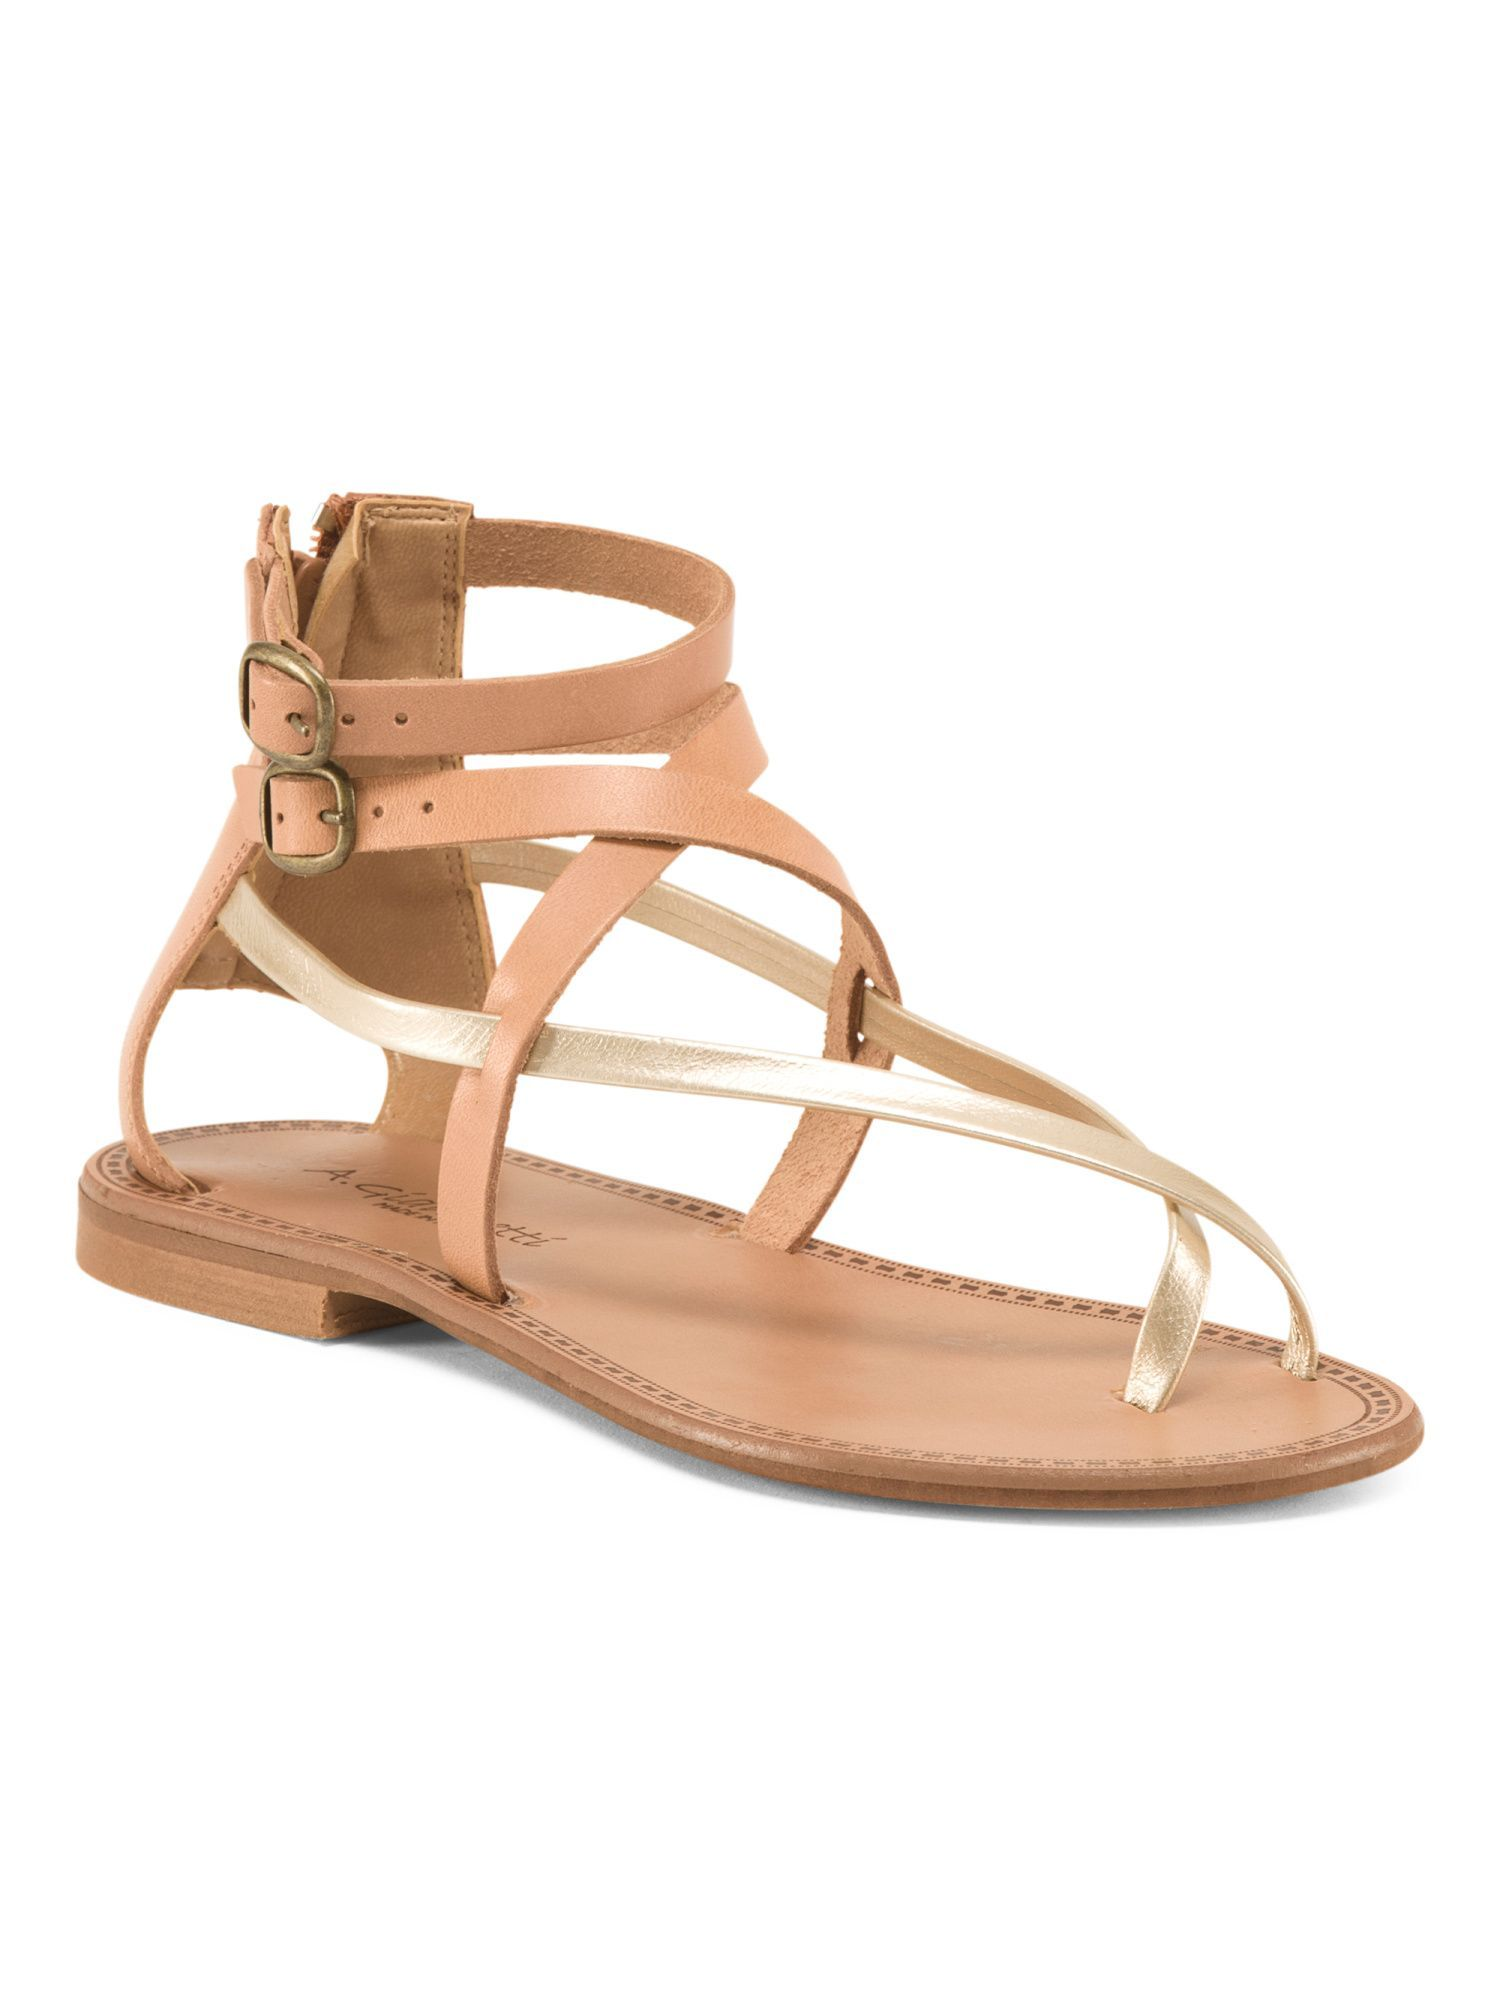 891ff2380 Made In Italy Zip Back Strappy Leather Sandals | Products | Leather ...